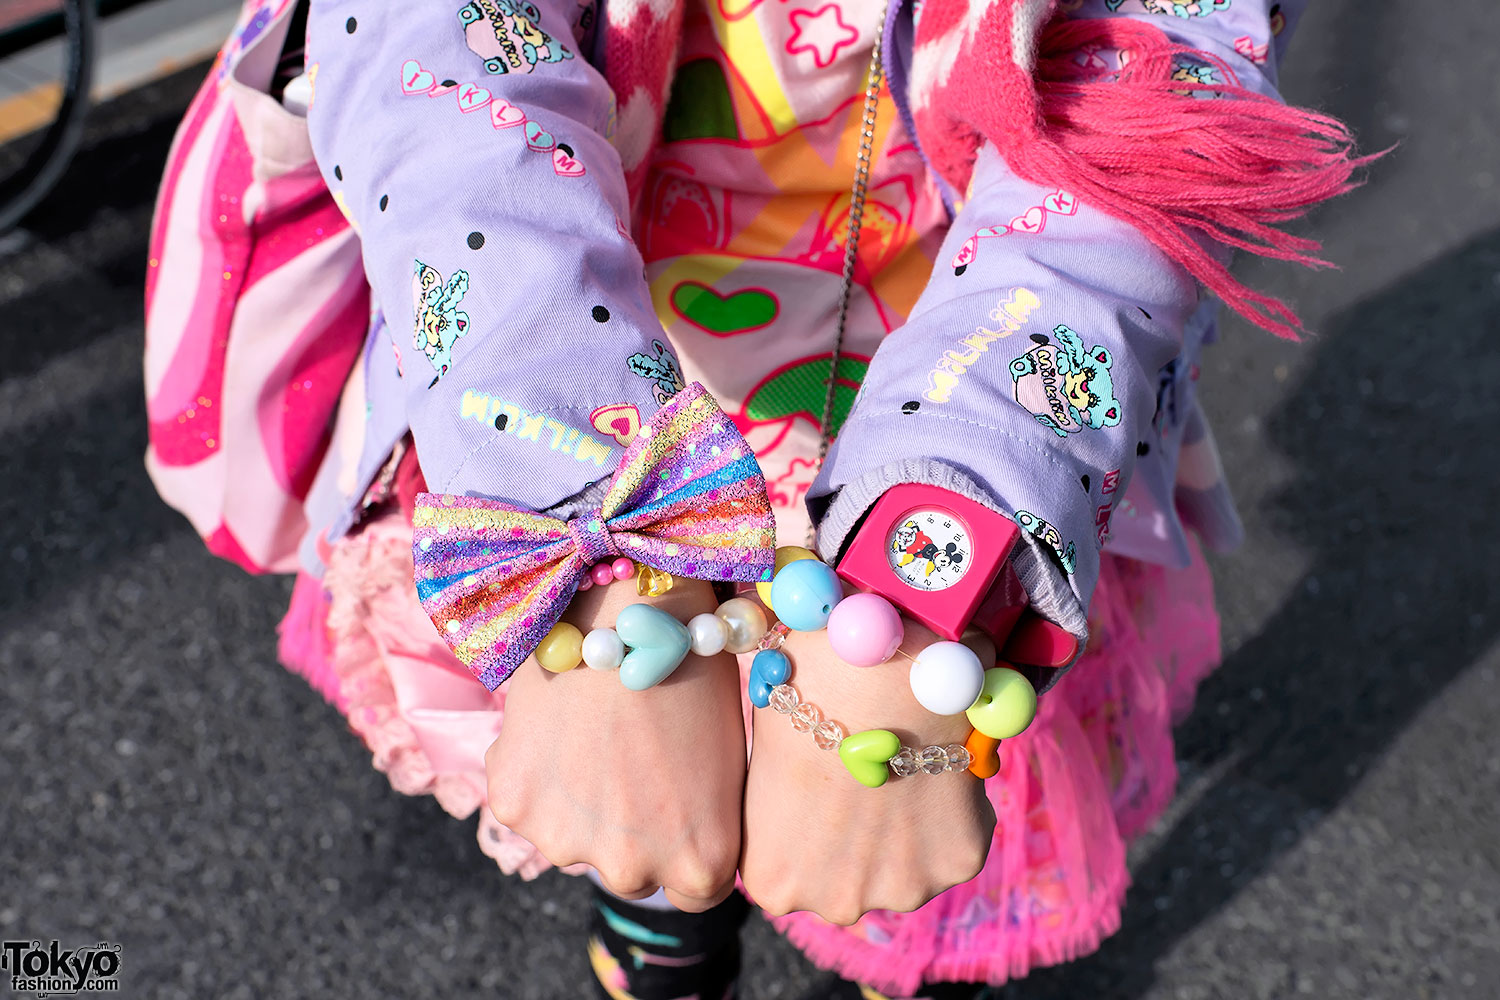 Decora Suiya From Decola Hopping W Milklim And 6 Dokidoki In Harajuku